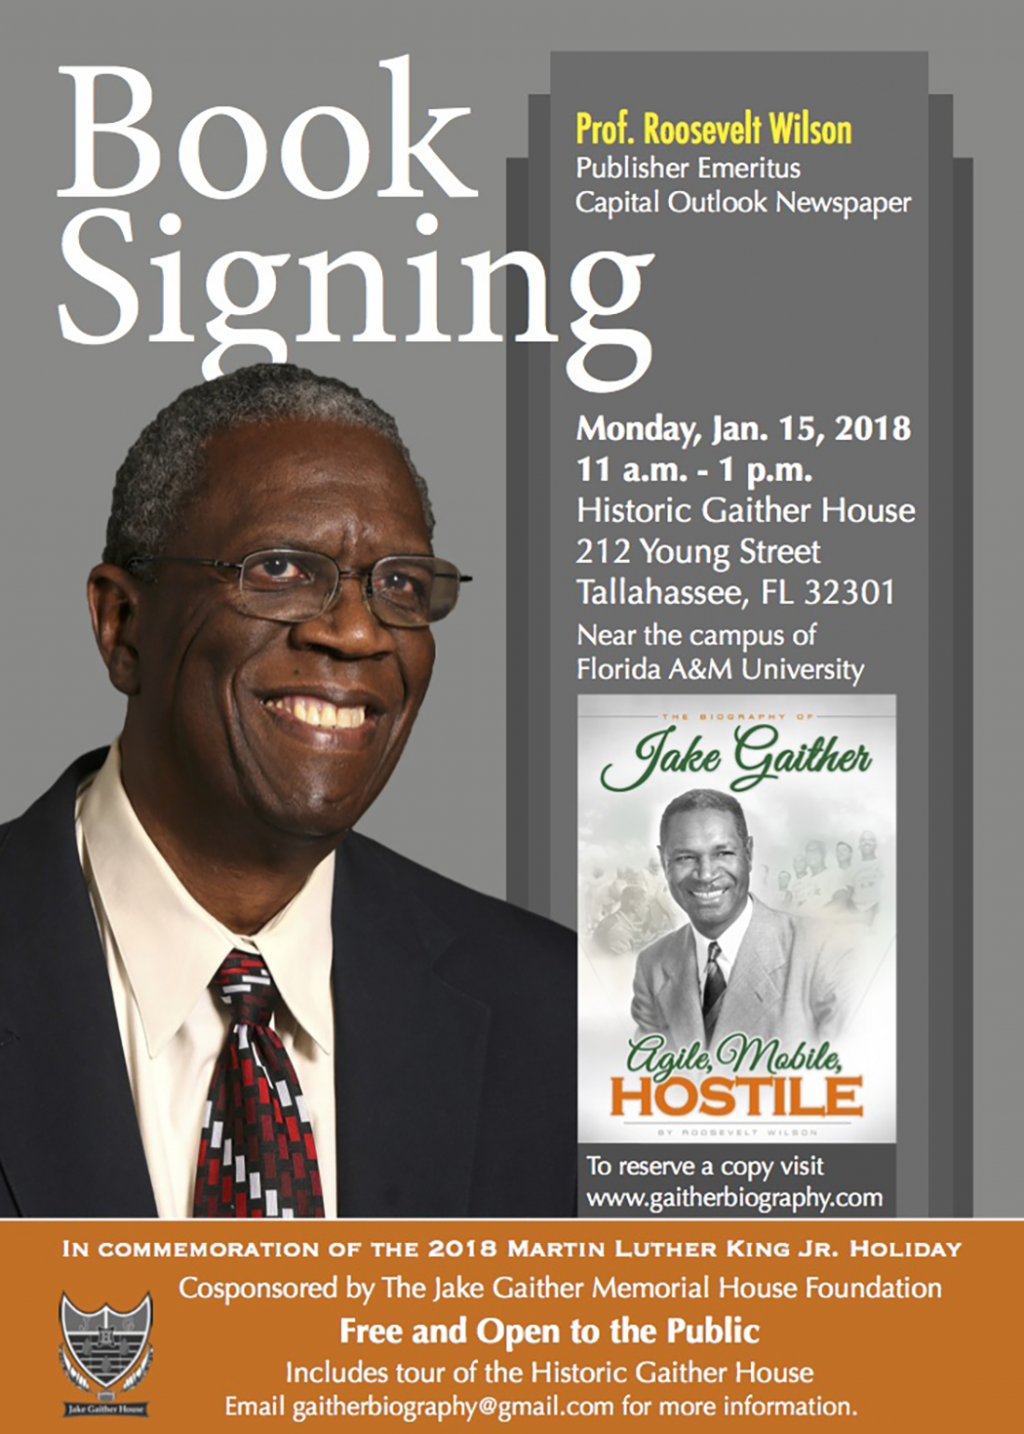 Book signing honoring Jake Gaither in celebration of MLK Day